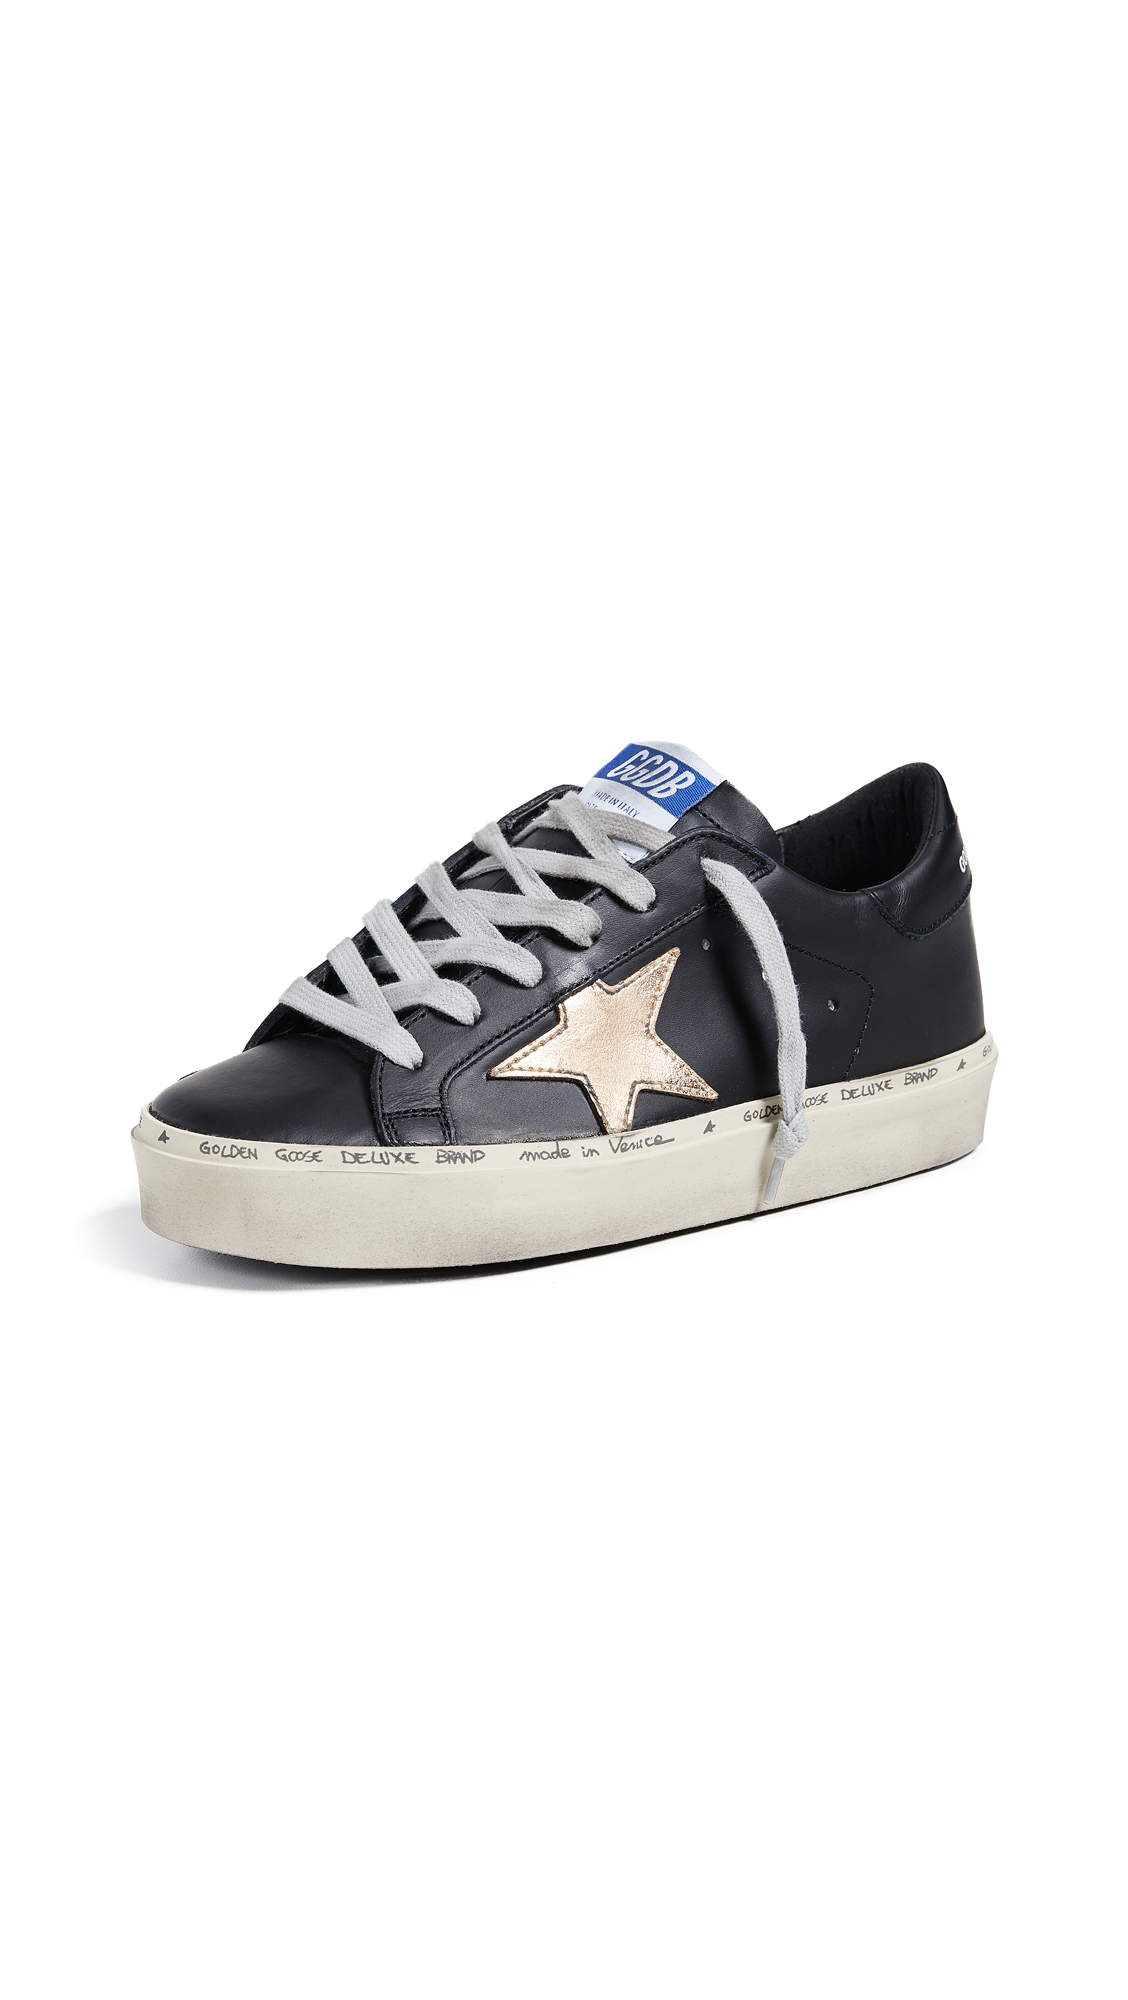 Golden Goose Hi Star Sneakers - Black/Gold